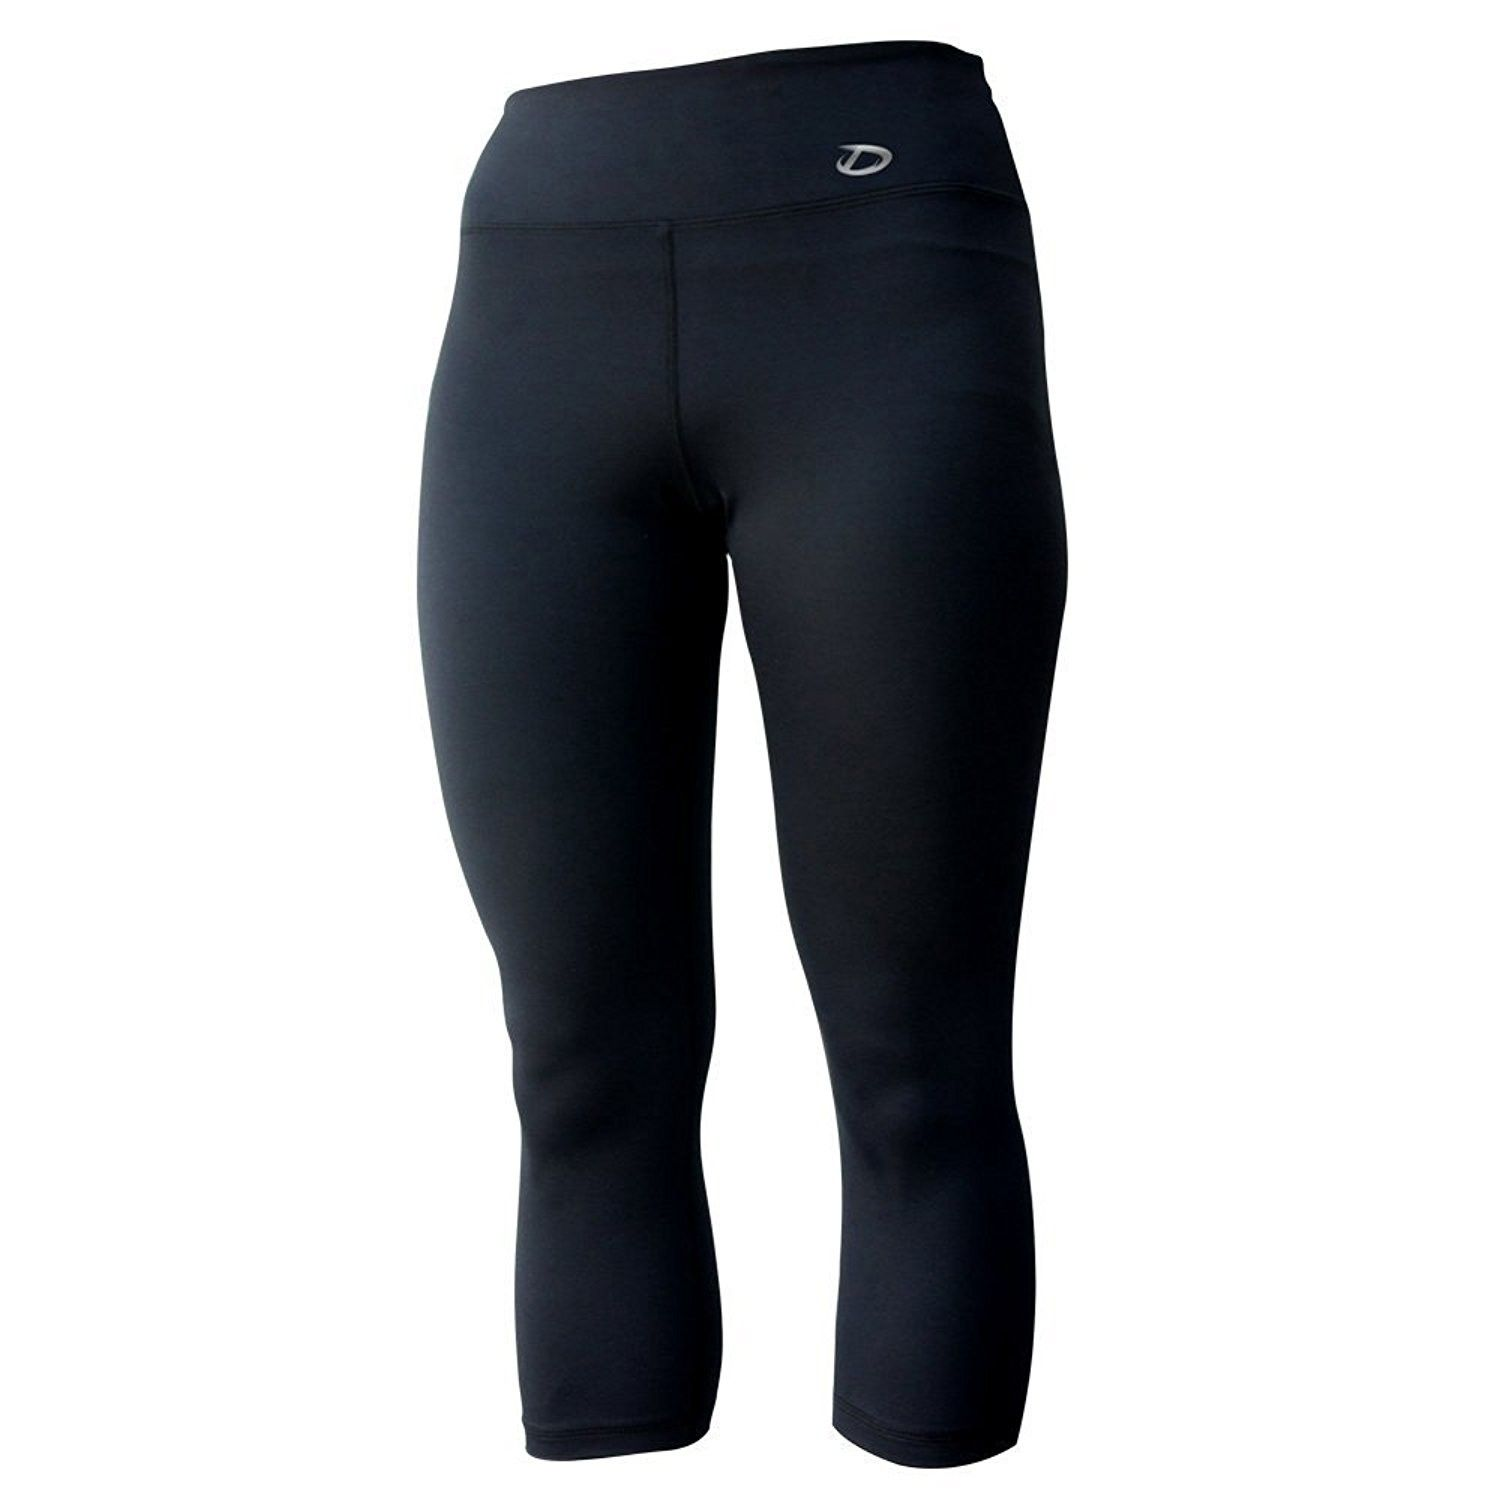 Tights & Workout Clothes  Blackd  C3187H6HNRU is part of Workout Clothes Black - Color Blackd SKU C3187H6HNRU Giftwrap Available